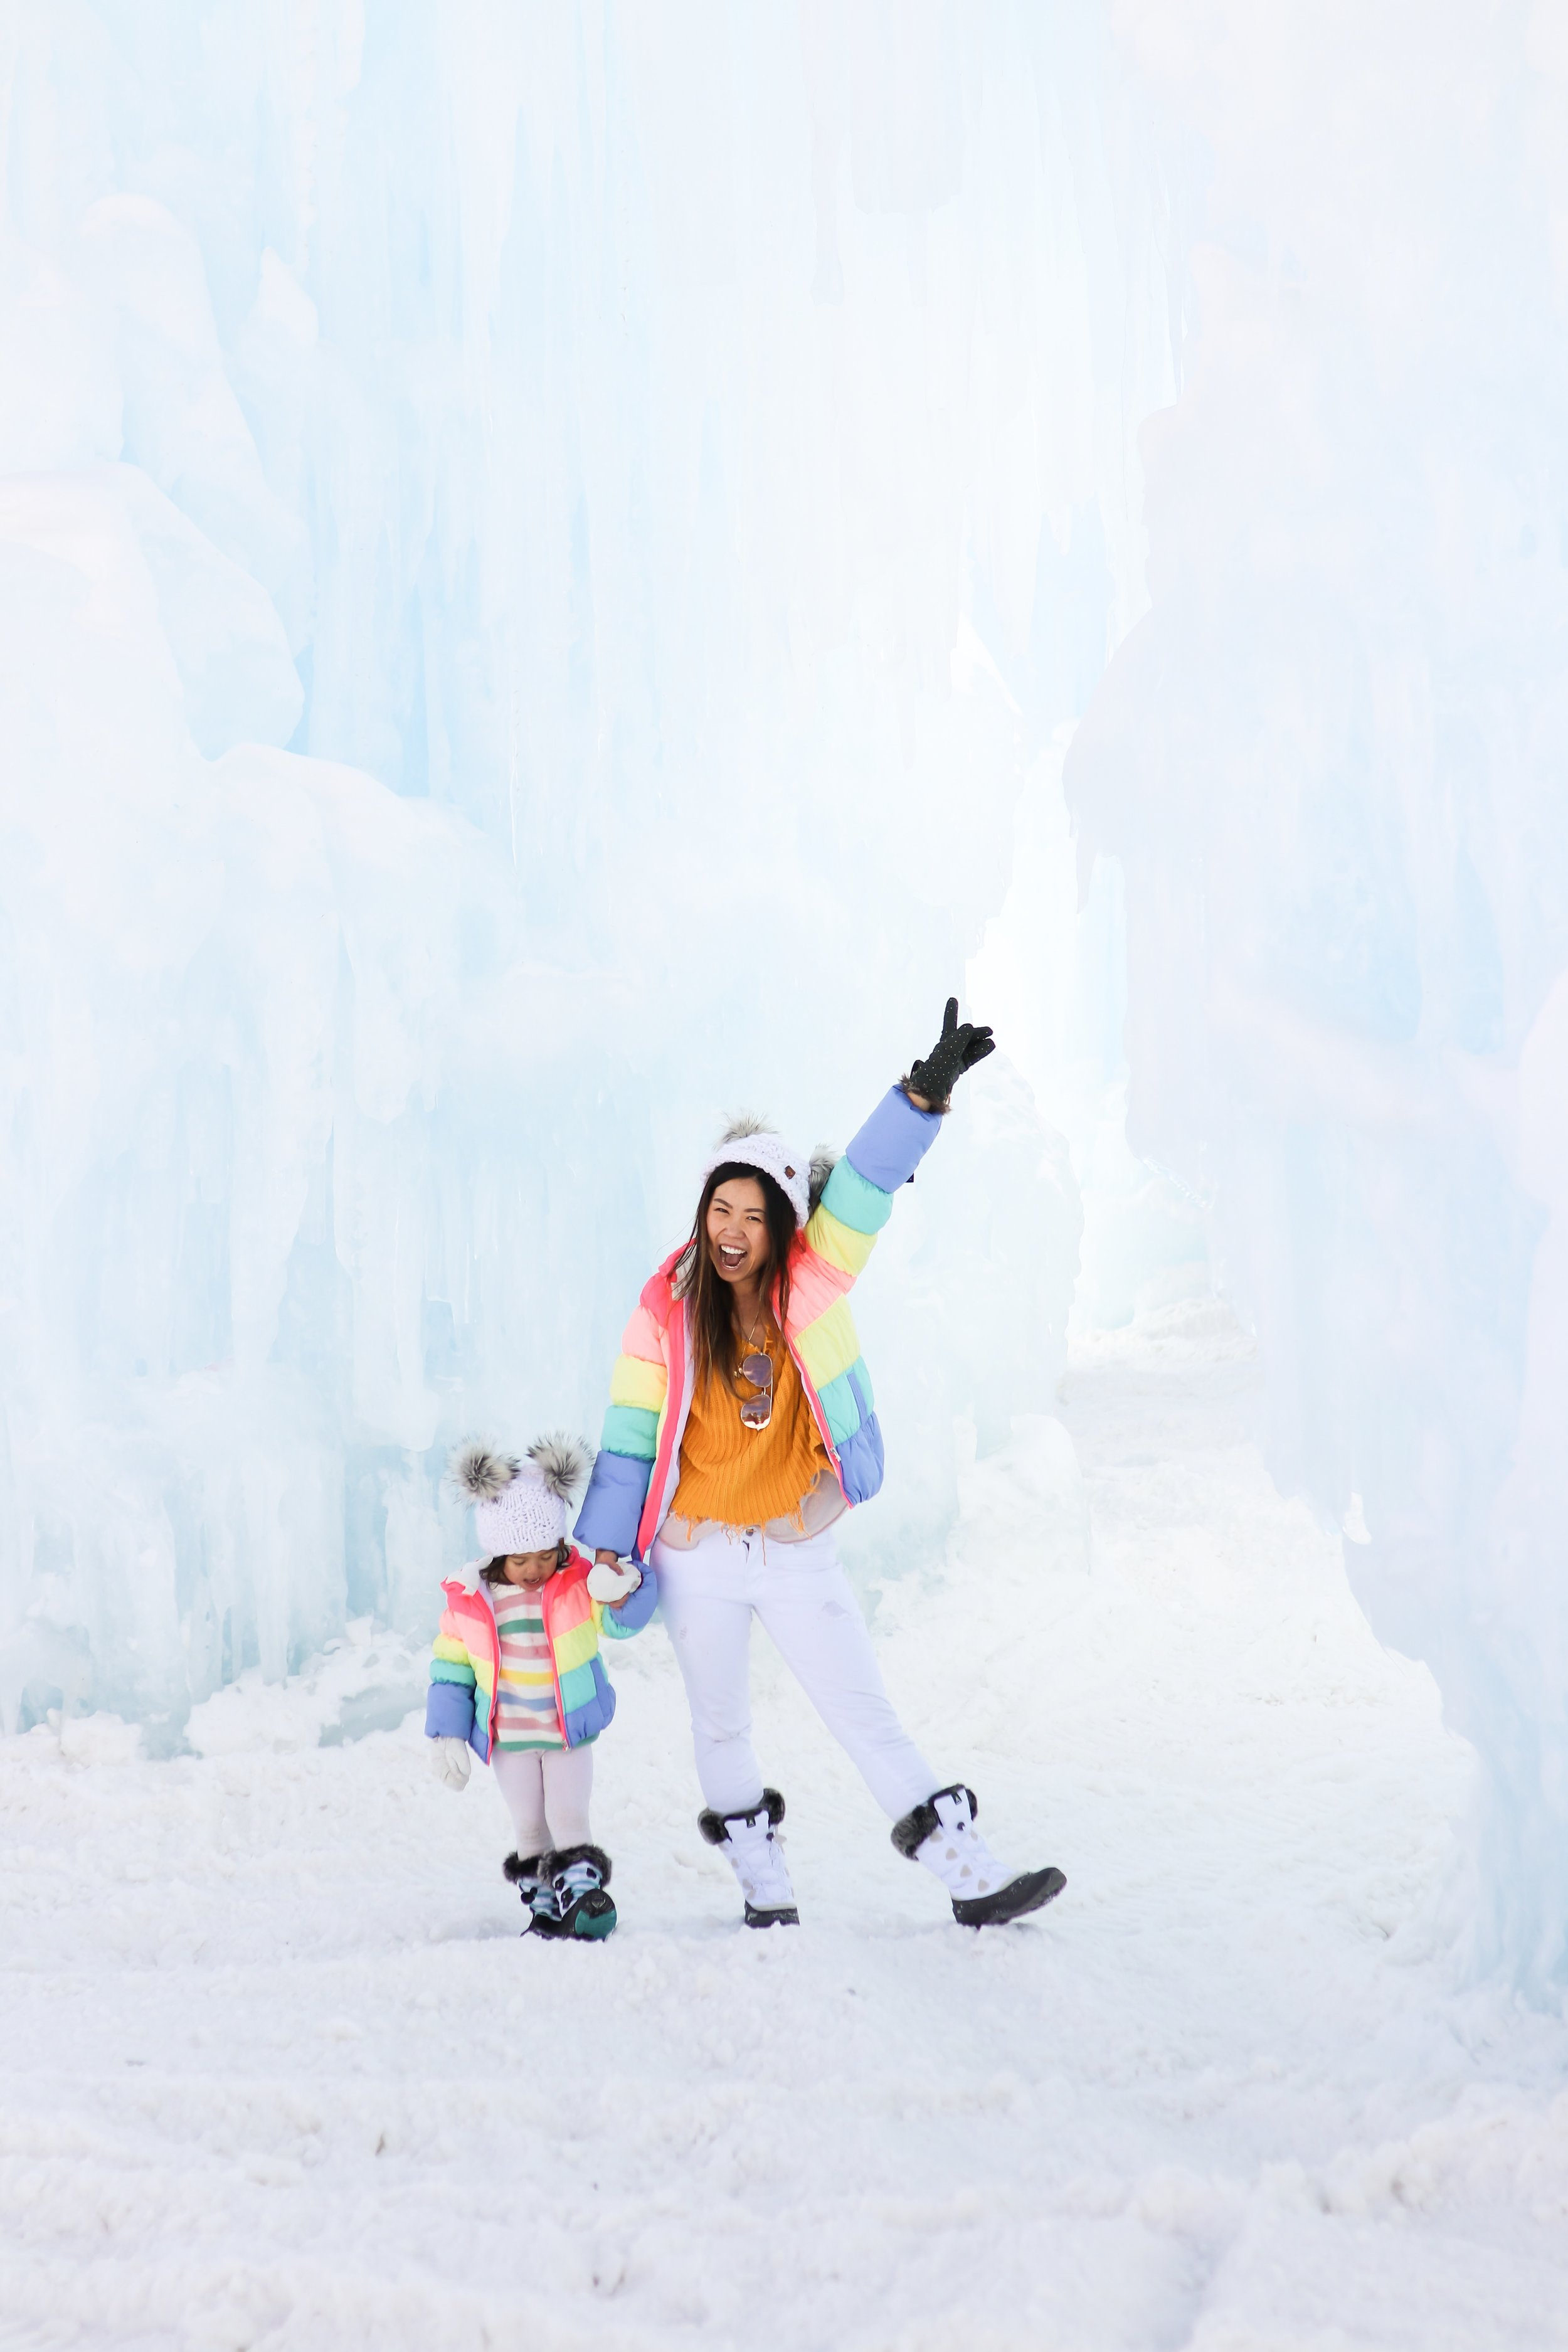 4 Days in Vail Colorado with a Toddler - How to Prepare for Baby's First Ski Trip and 5 Winter Family Activities Hotel Talisa Review Joyfullygreen Family Travel Blogger Ice Castles Dillon Colorado